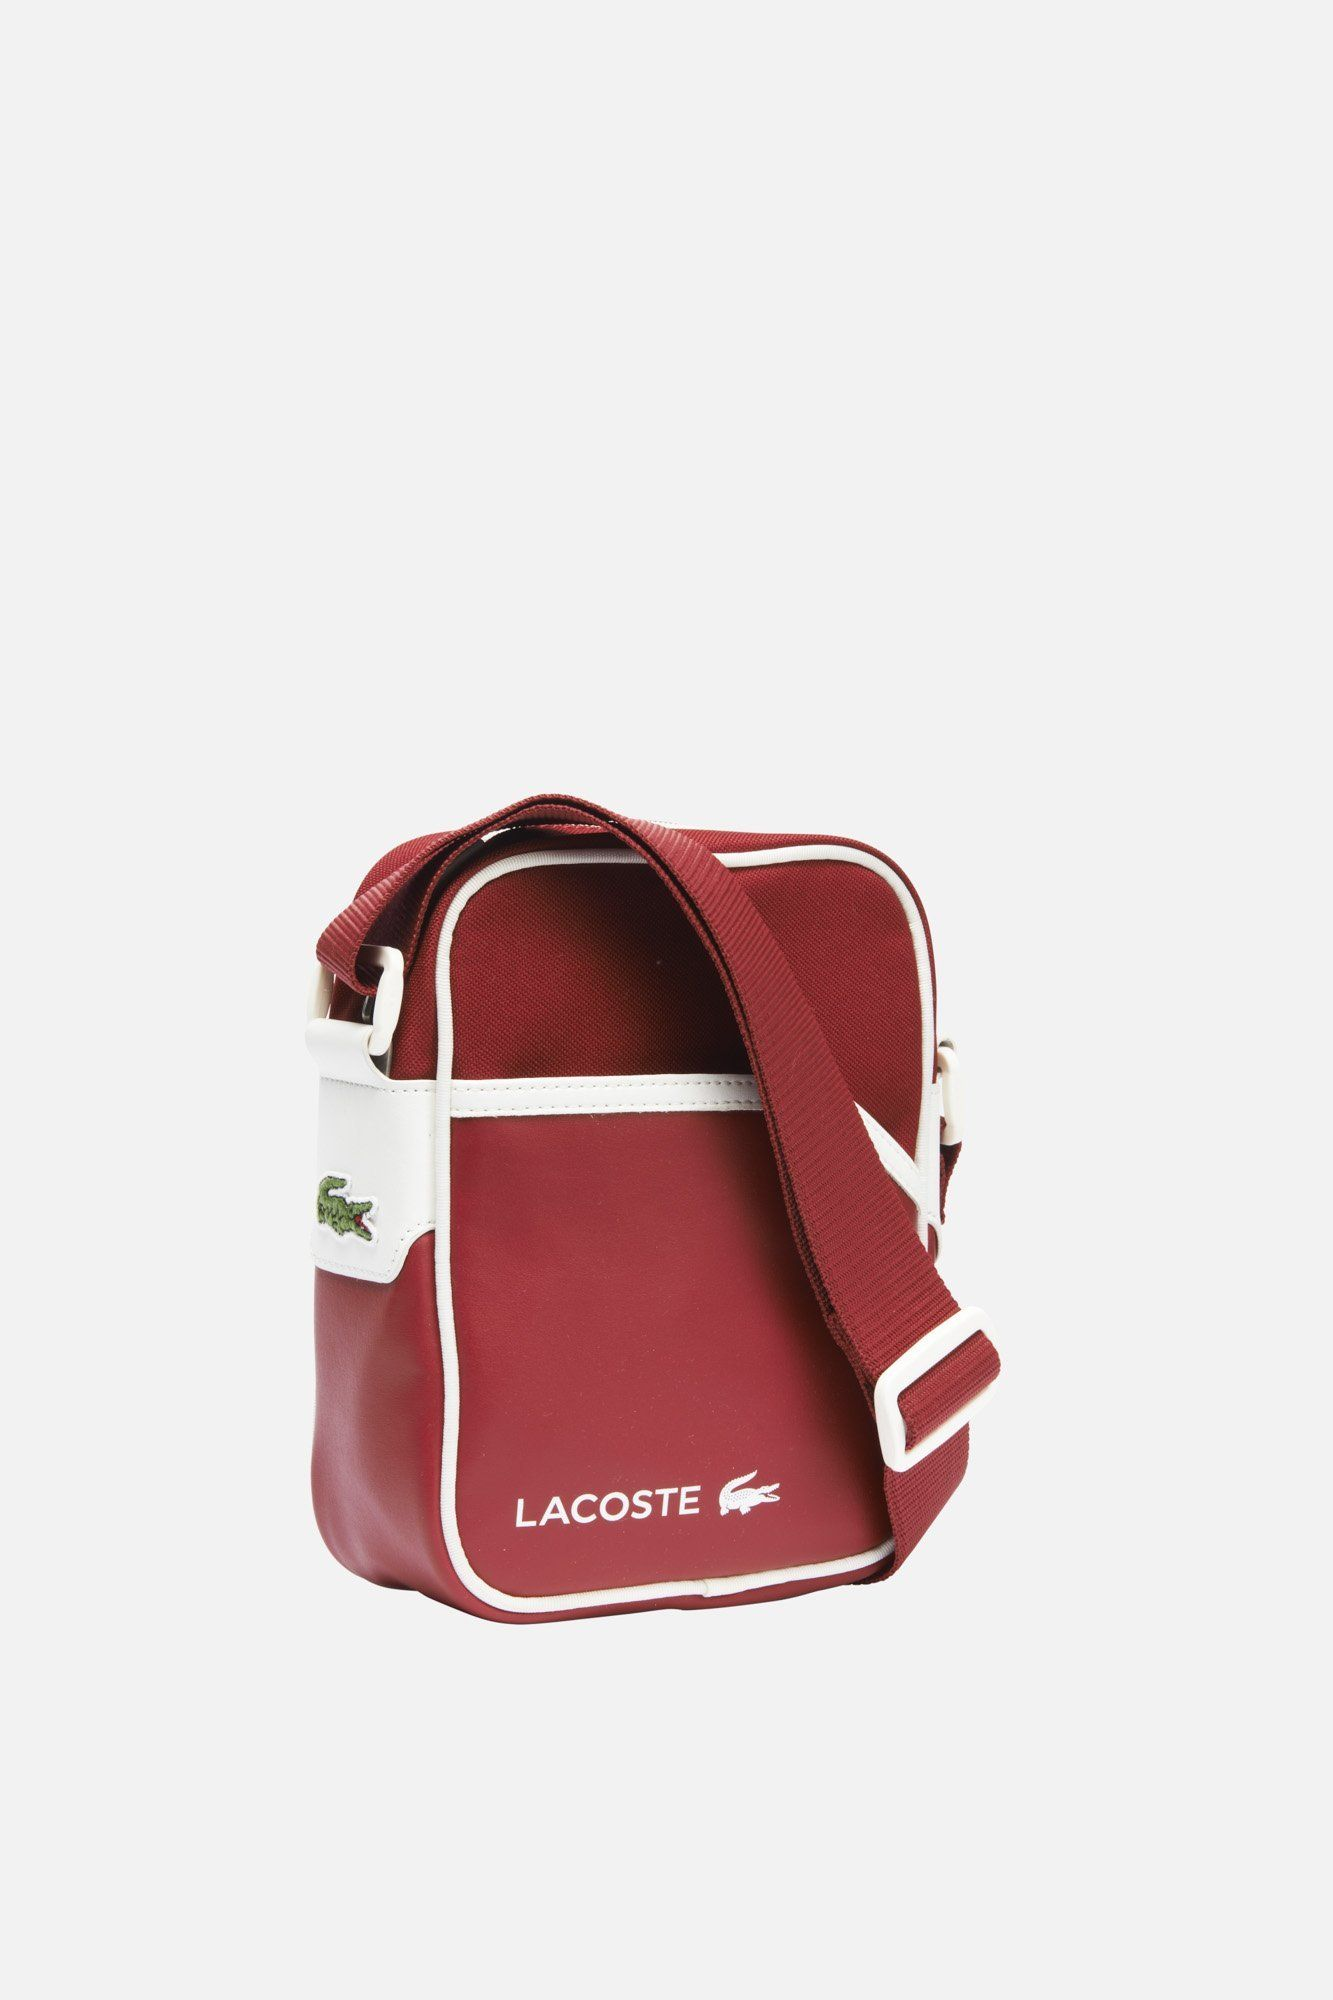 686067e93 Lacoste Small Vertical Camera Bag   Bags   Wallets